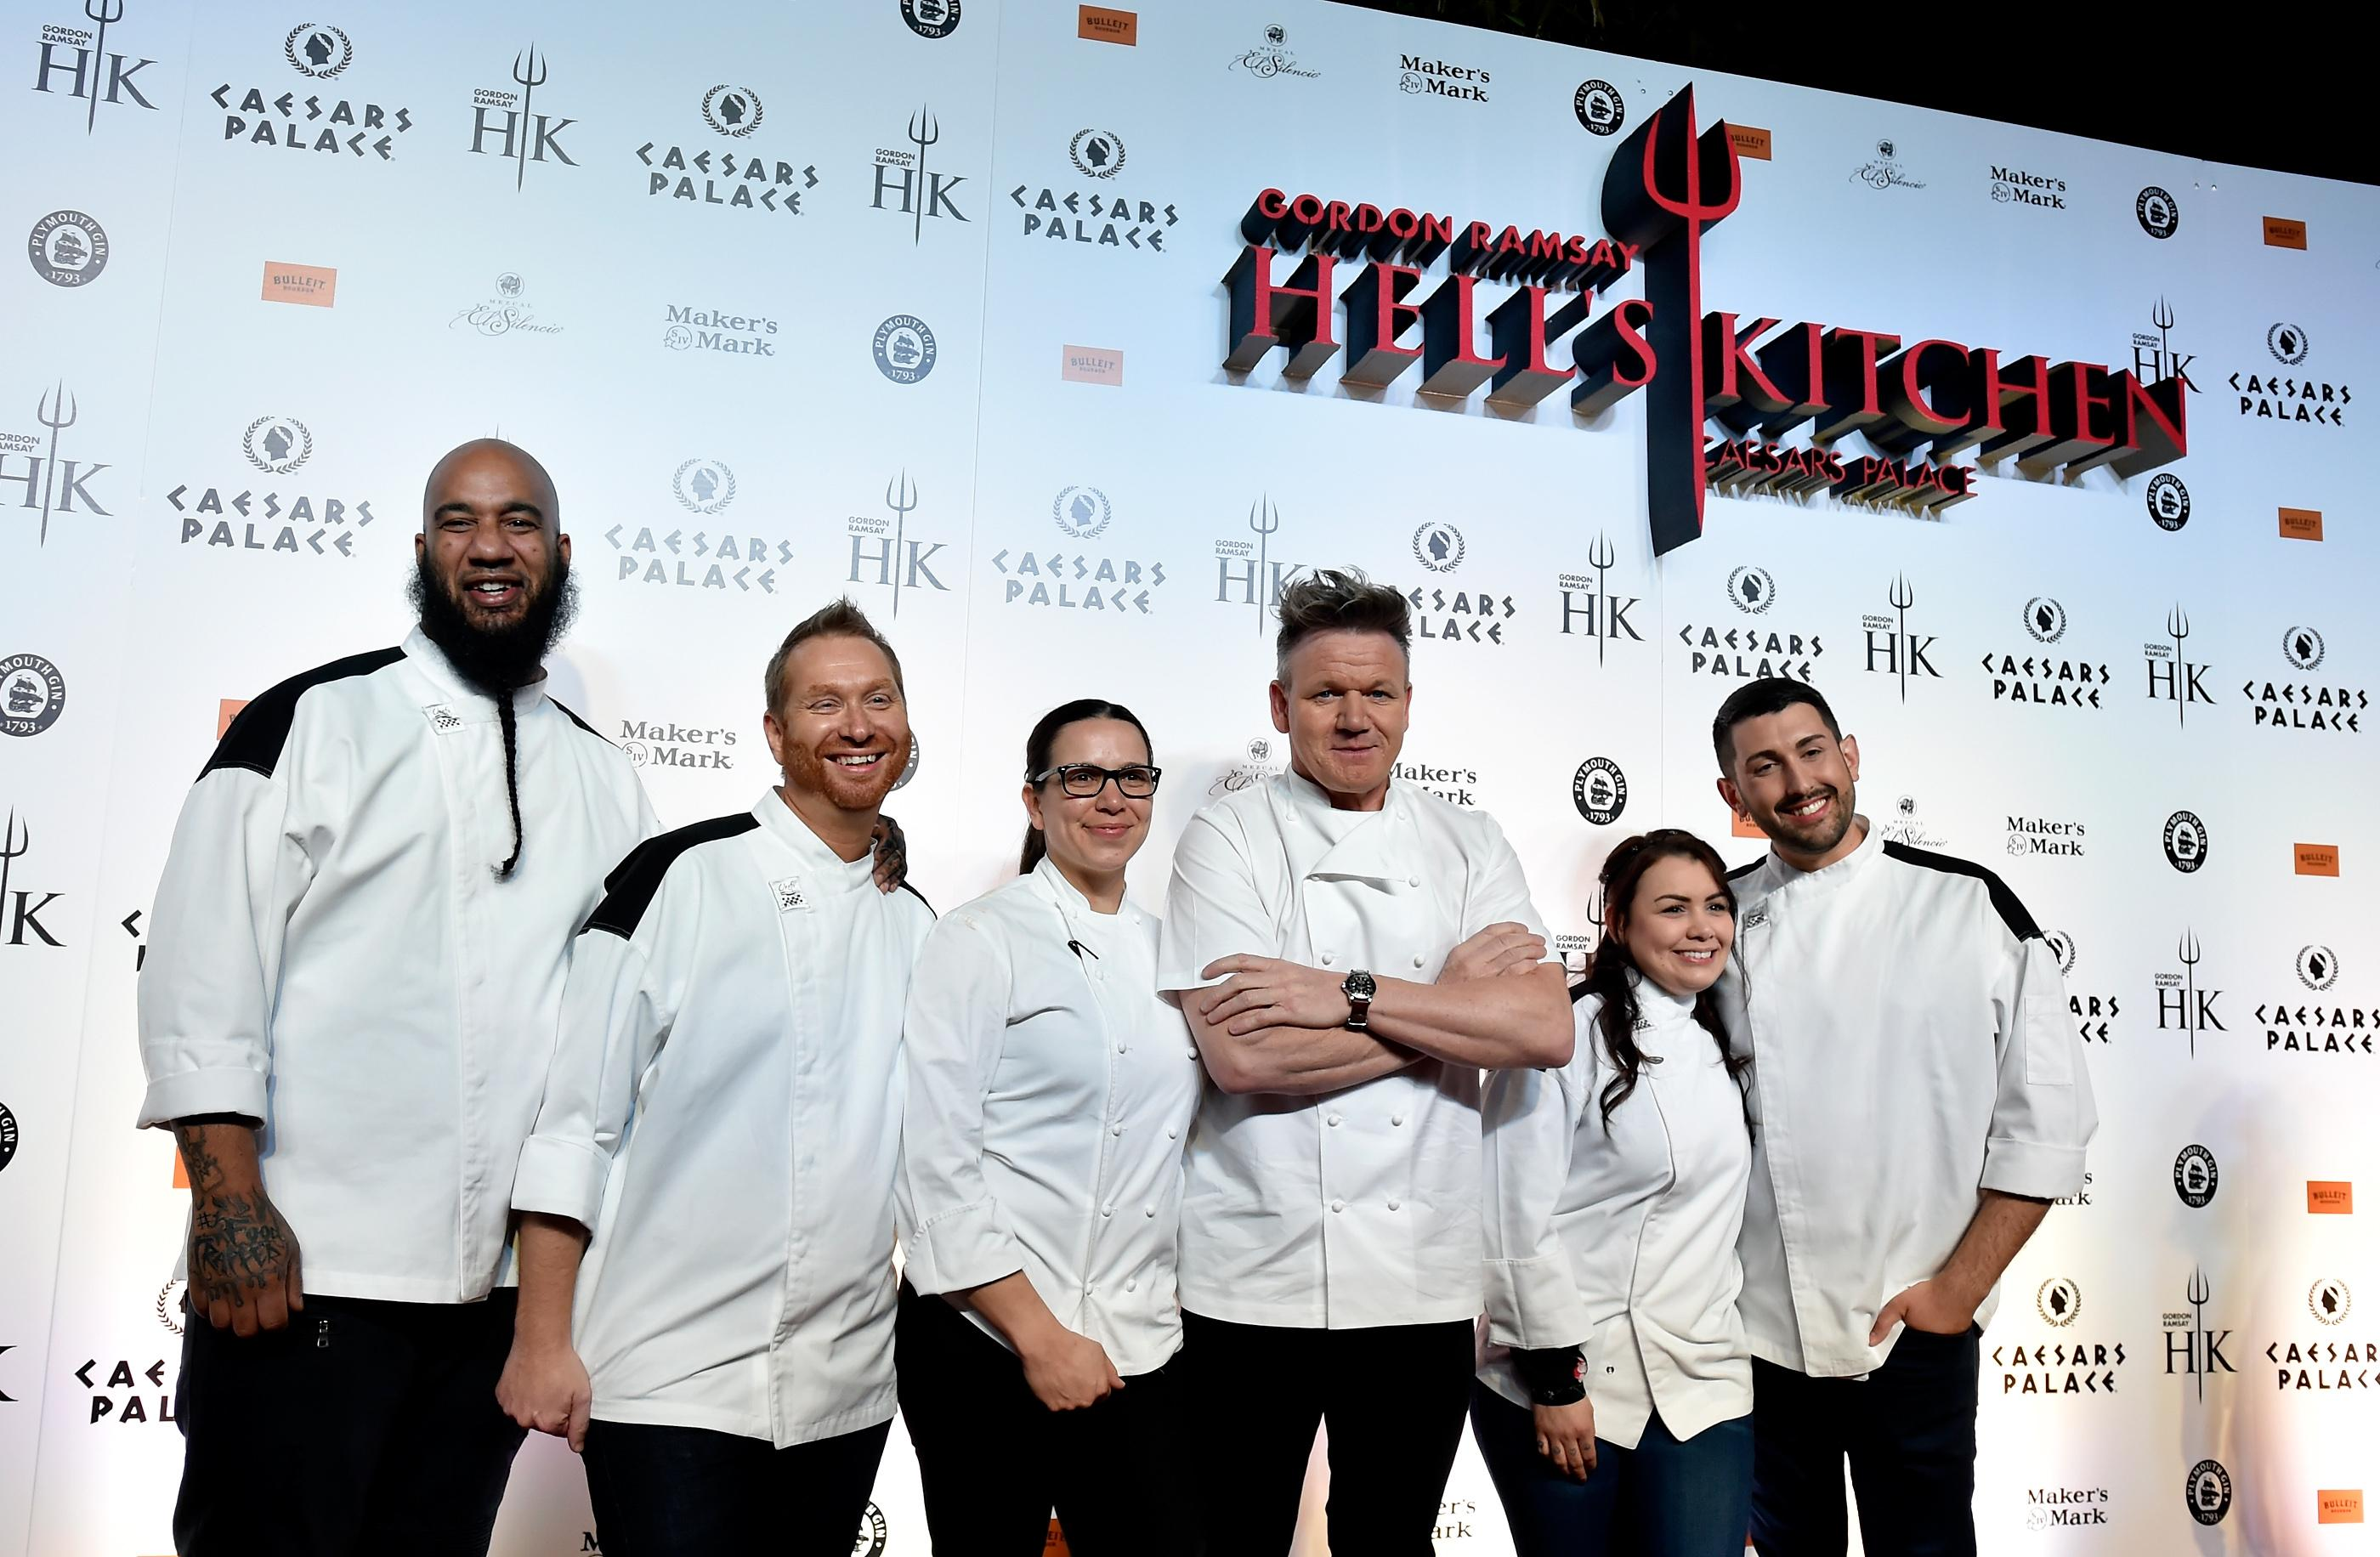 from left hells kitchen season 17 finalists emili medley benjamin knack hells kitchen - Hells Kitchen Season 17